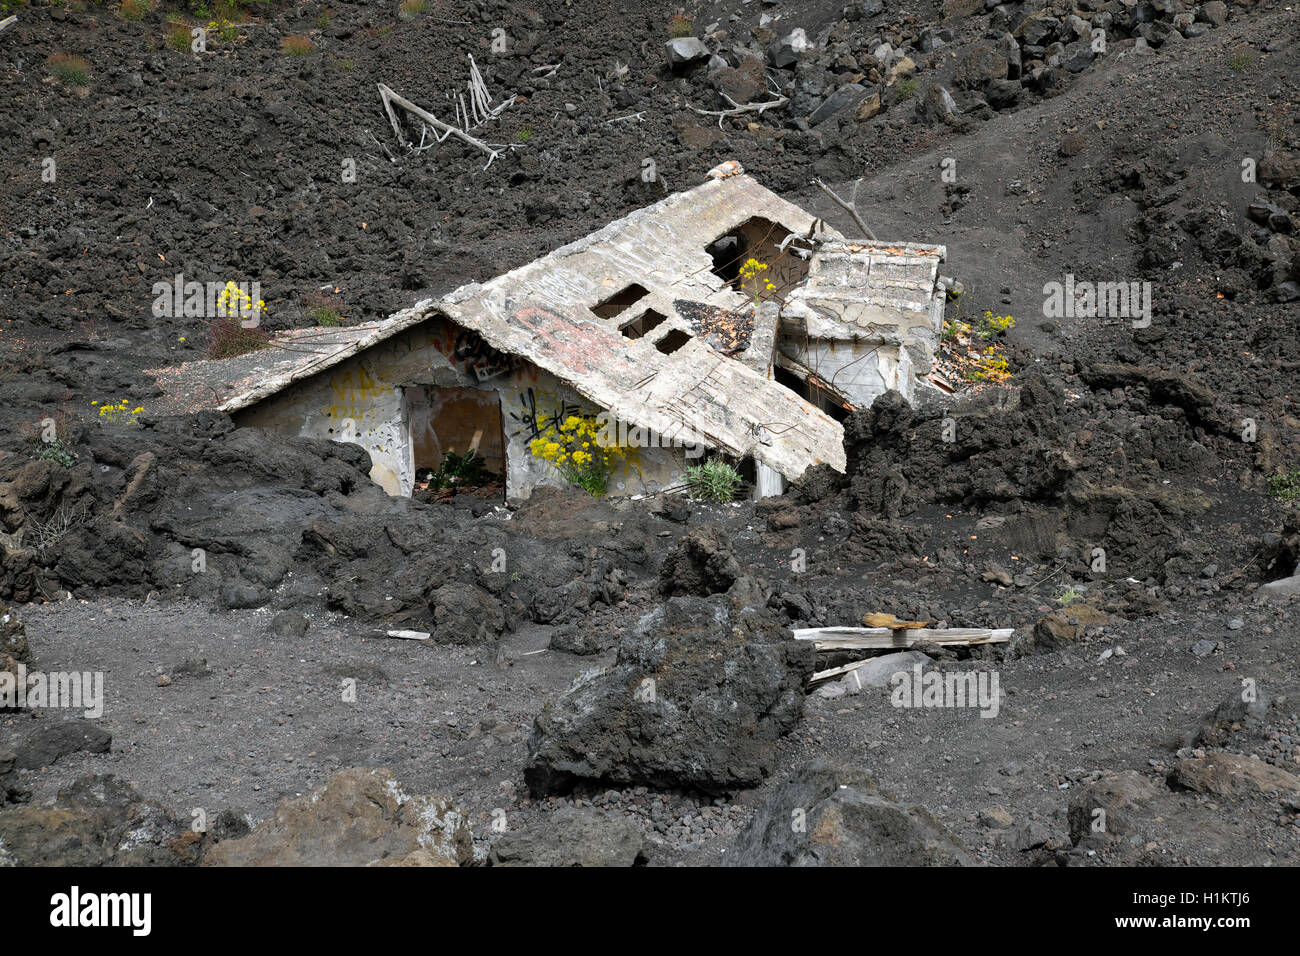 House covered with lava on the slopes of Mount Etna, Sicily, Italy - Stock Image